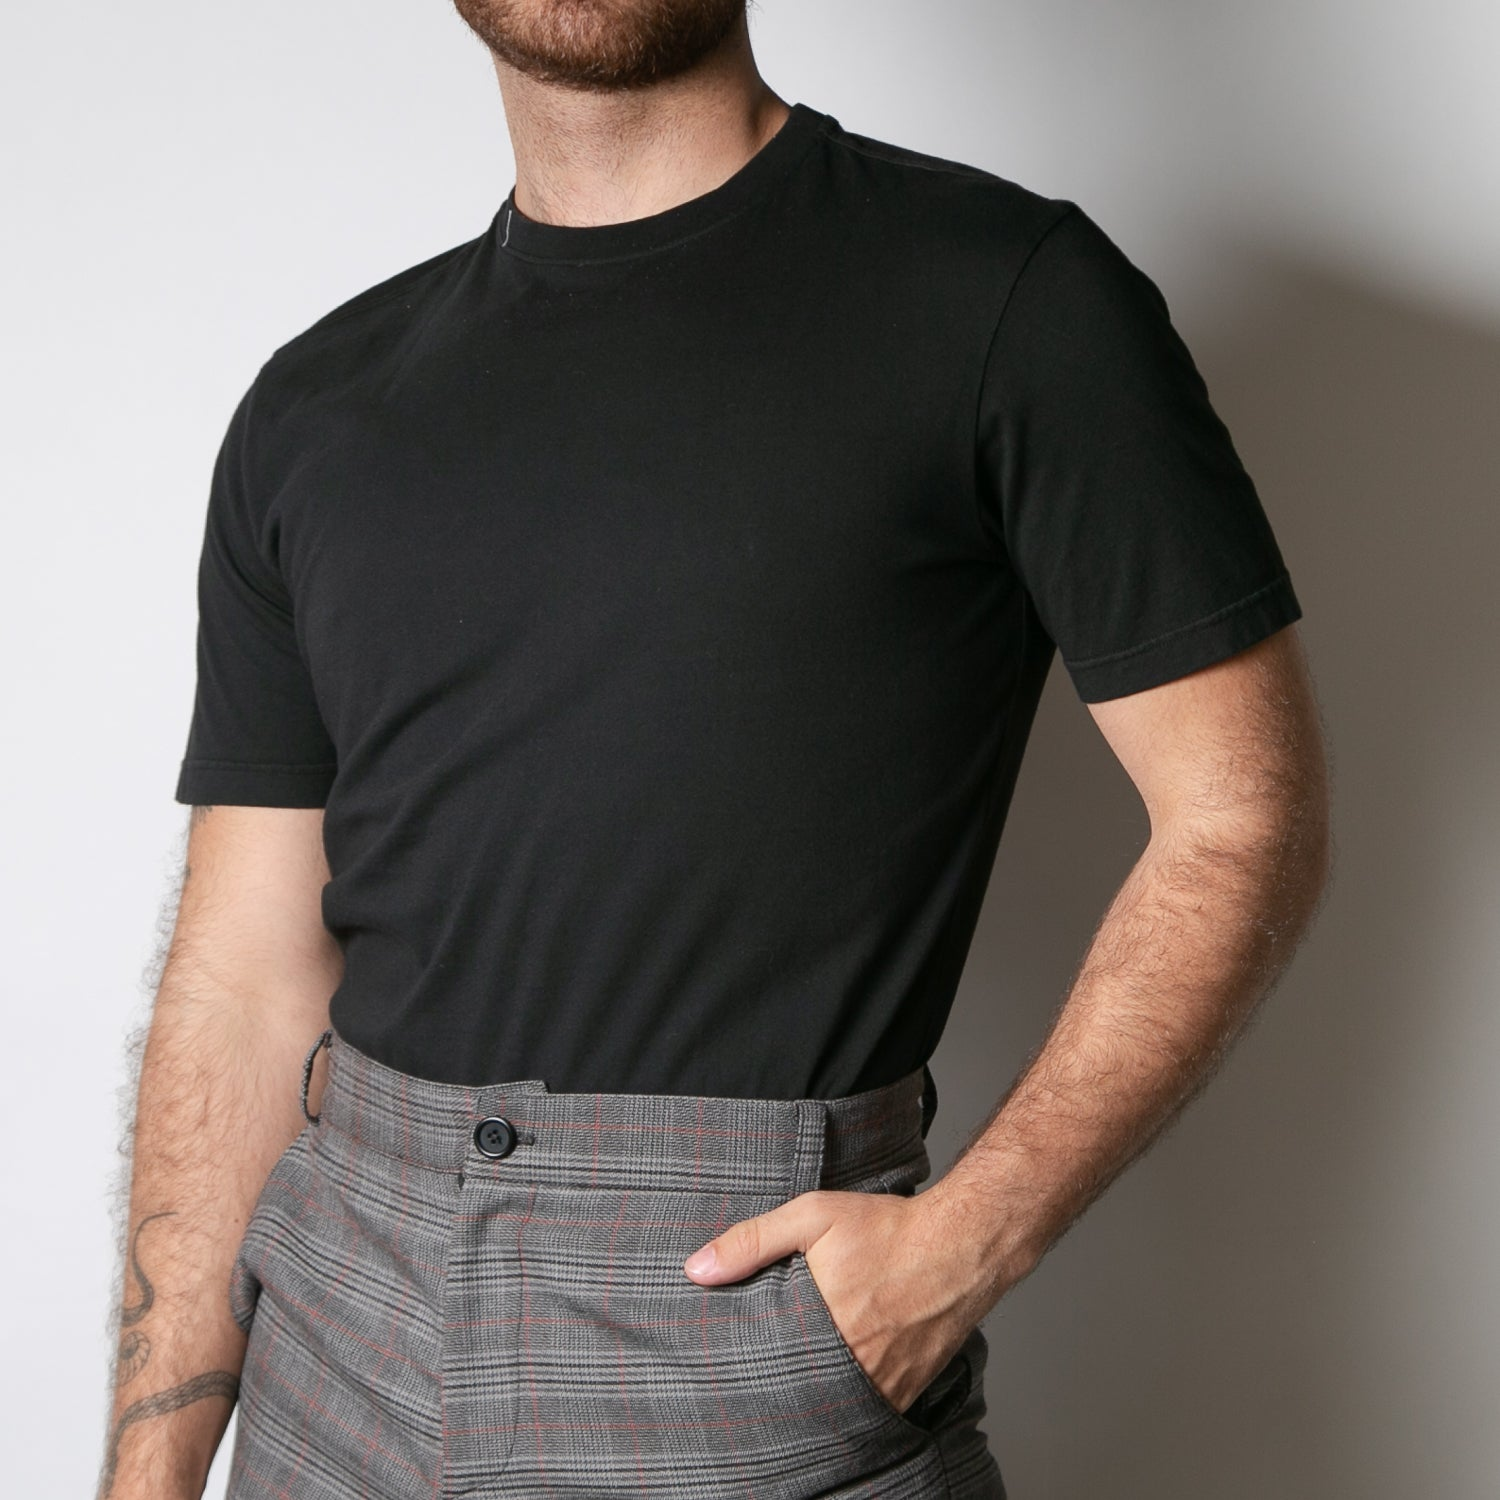 basic men's organic cotton black t-shirt by Secret Location